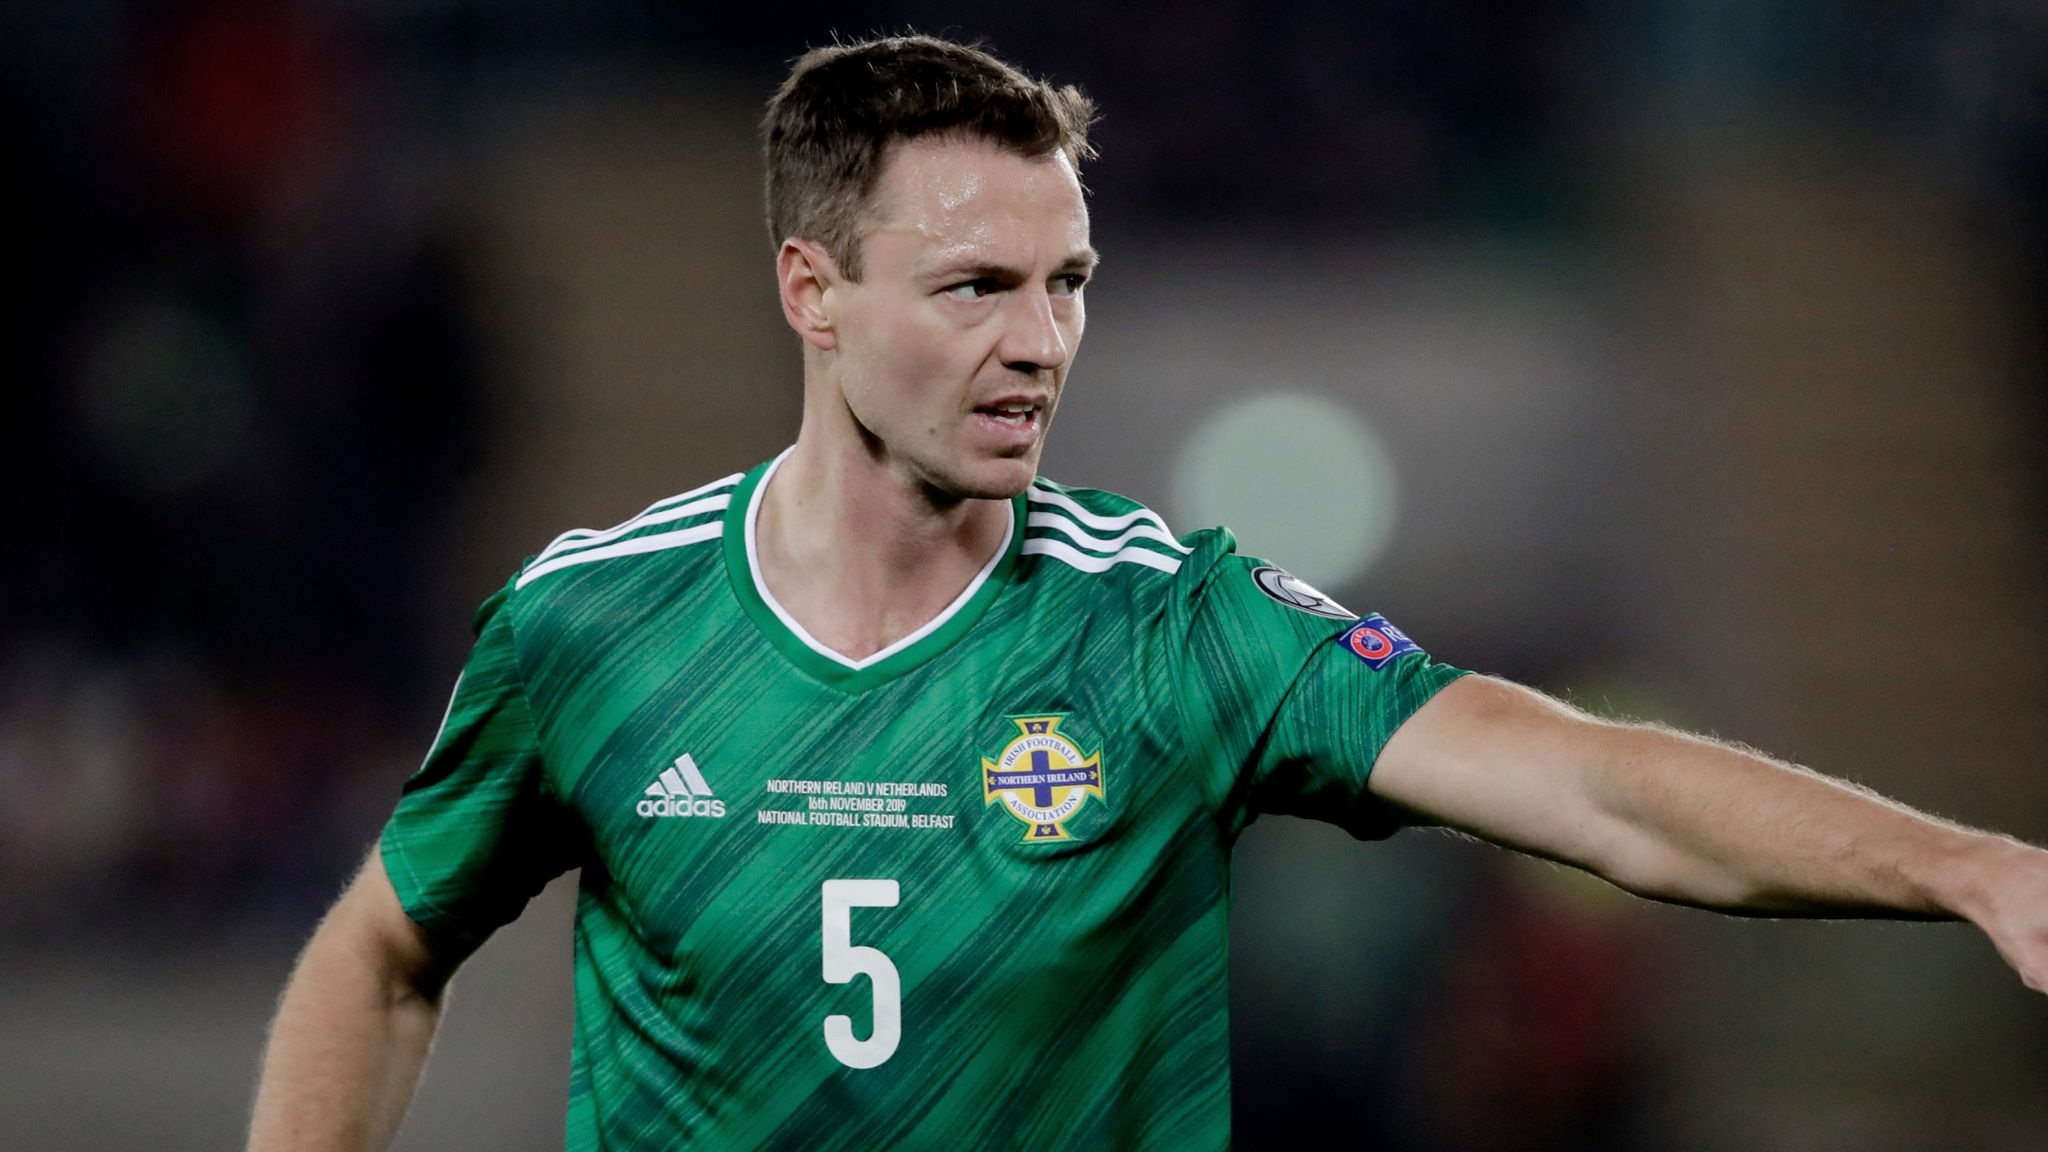 Live Match Preview Bos Herz Vs N Ireland 08 10 2020